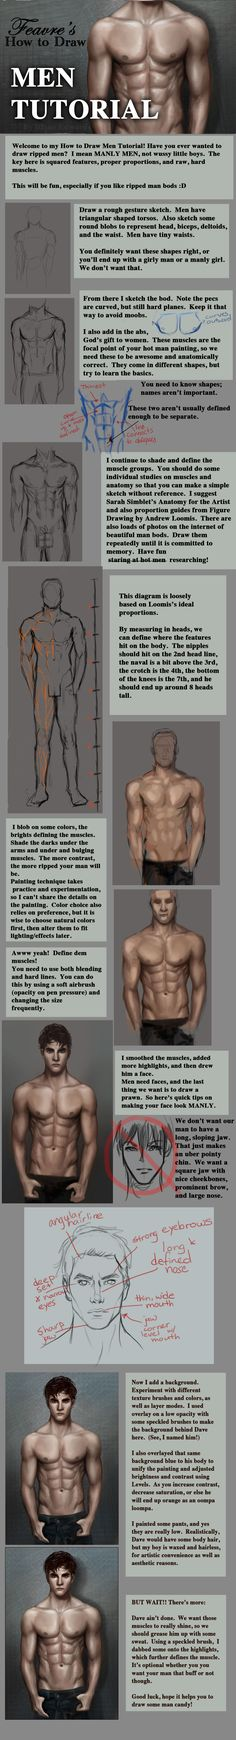 How to Draw Men Tutorial by feavre.deviantart.com on @deviantART